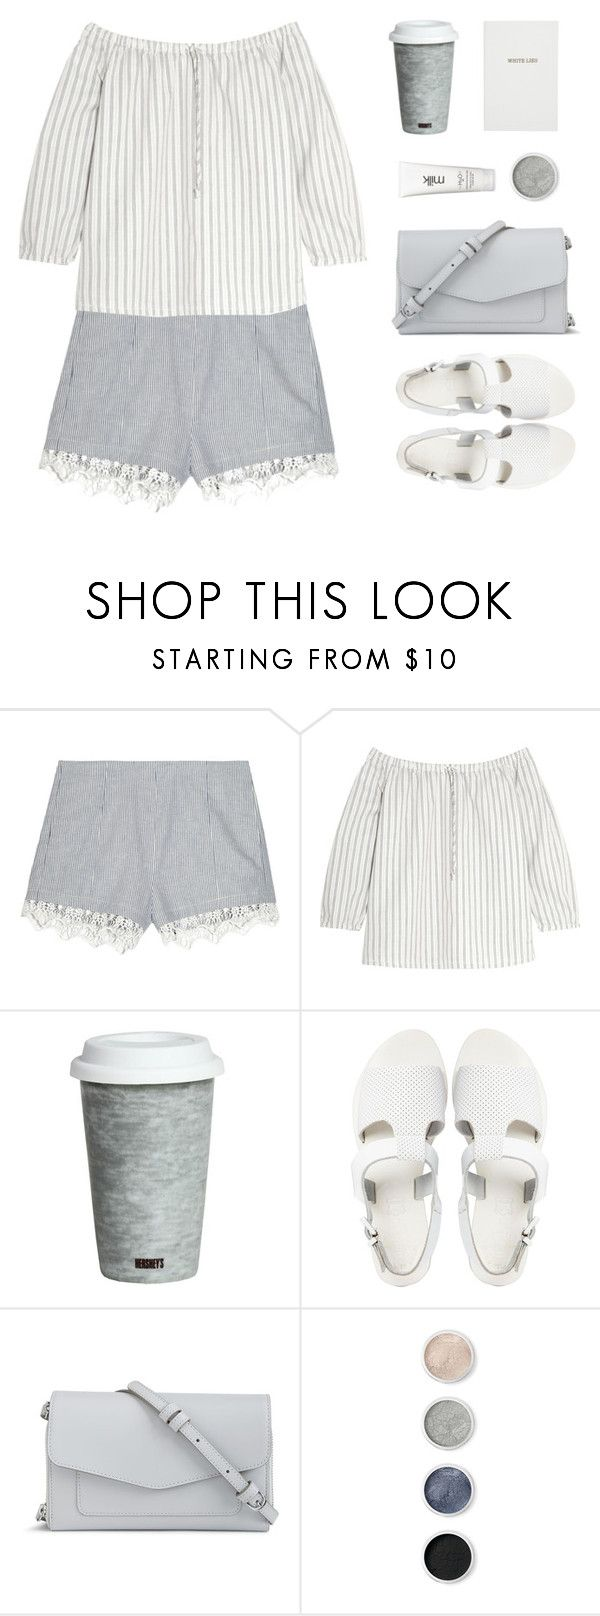 """""""Perfect Pinstripes Day"""" by sweetpastelady ❤ liked on Polyvore featuring rag & bone, Madewell, Fitz & Floyd, Sol Sana, Vera Bradley, Terre Mère, H2O+ and Sloane Stationery"""